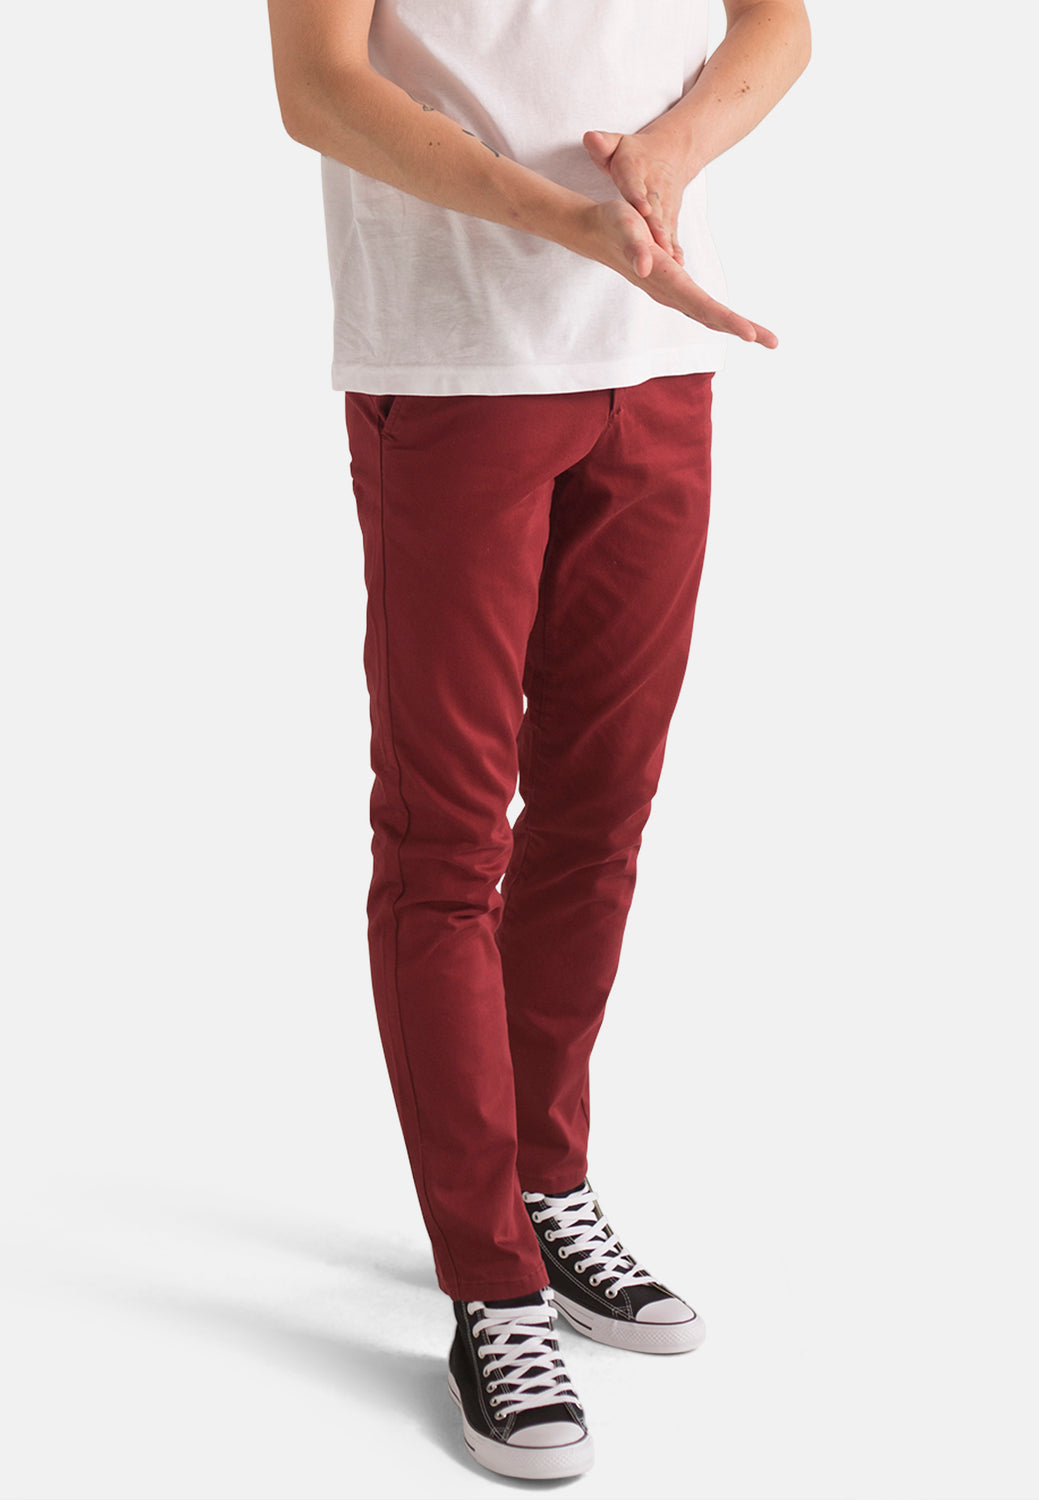 Organic Chino in Wine - Monkee Genes Organic Jeans Denim - Men's Chinos Monkee Genes Official  Monkee Genes Official